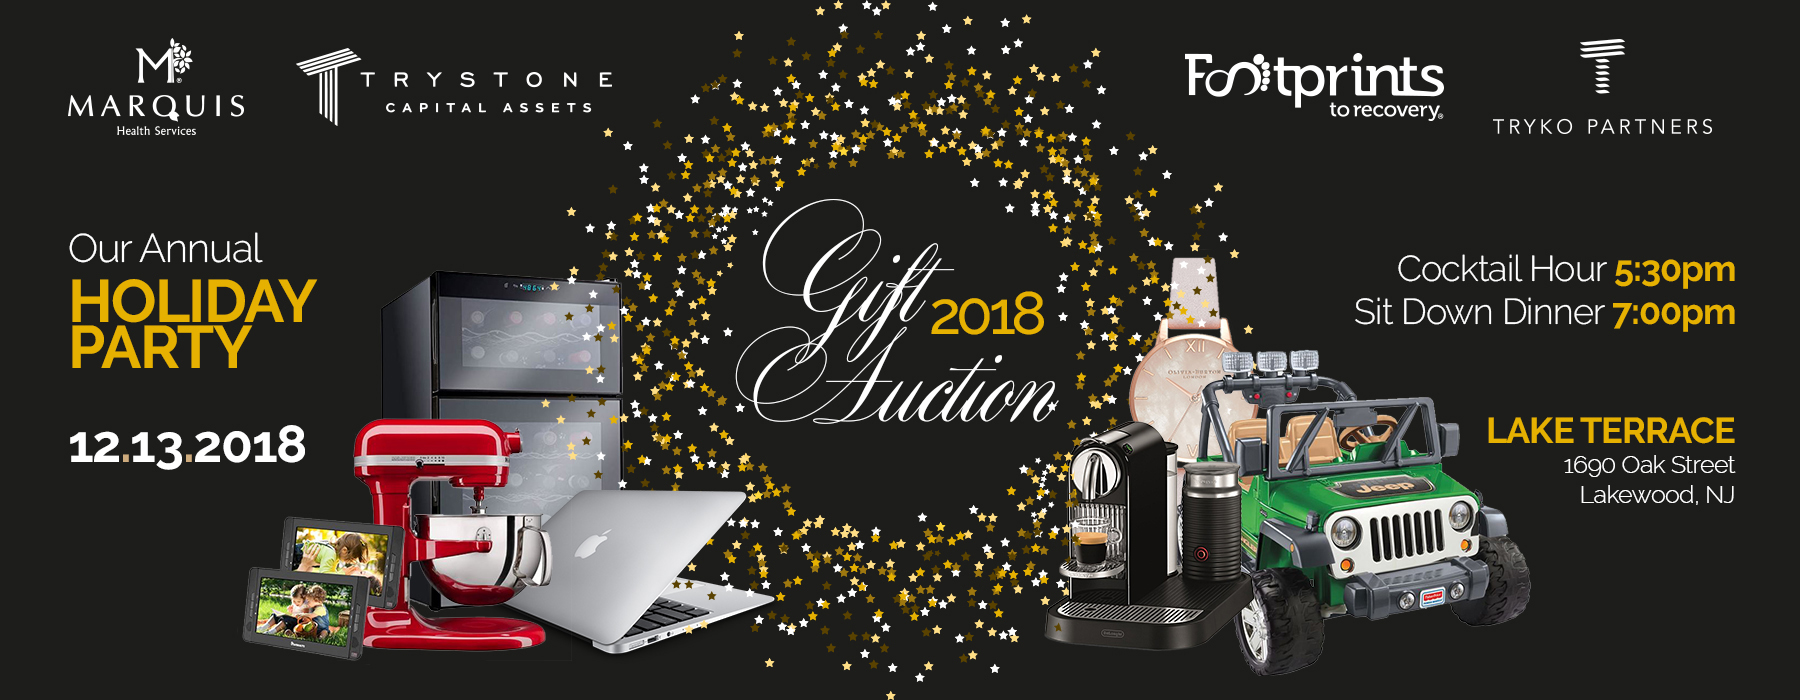 Marquis Gift Auction